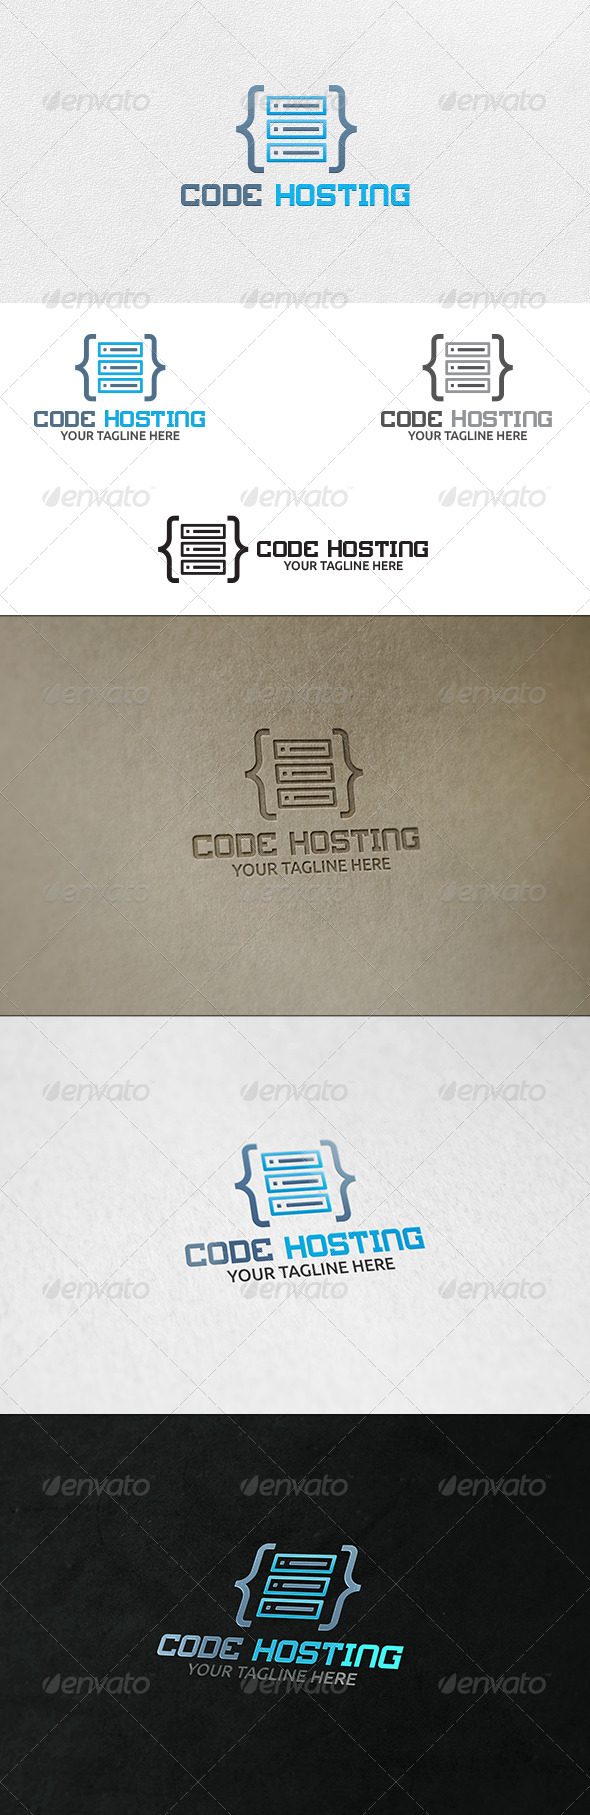 Code Hosting Server - Logo Template - Symbols Logo Templates